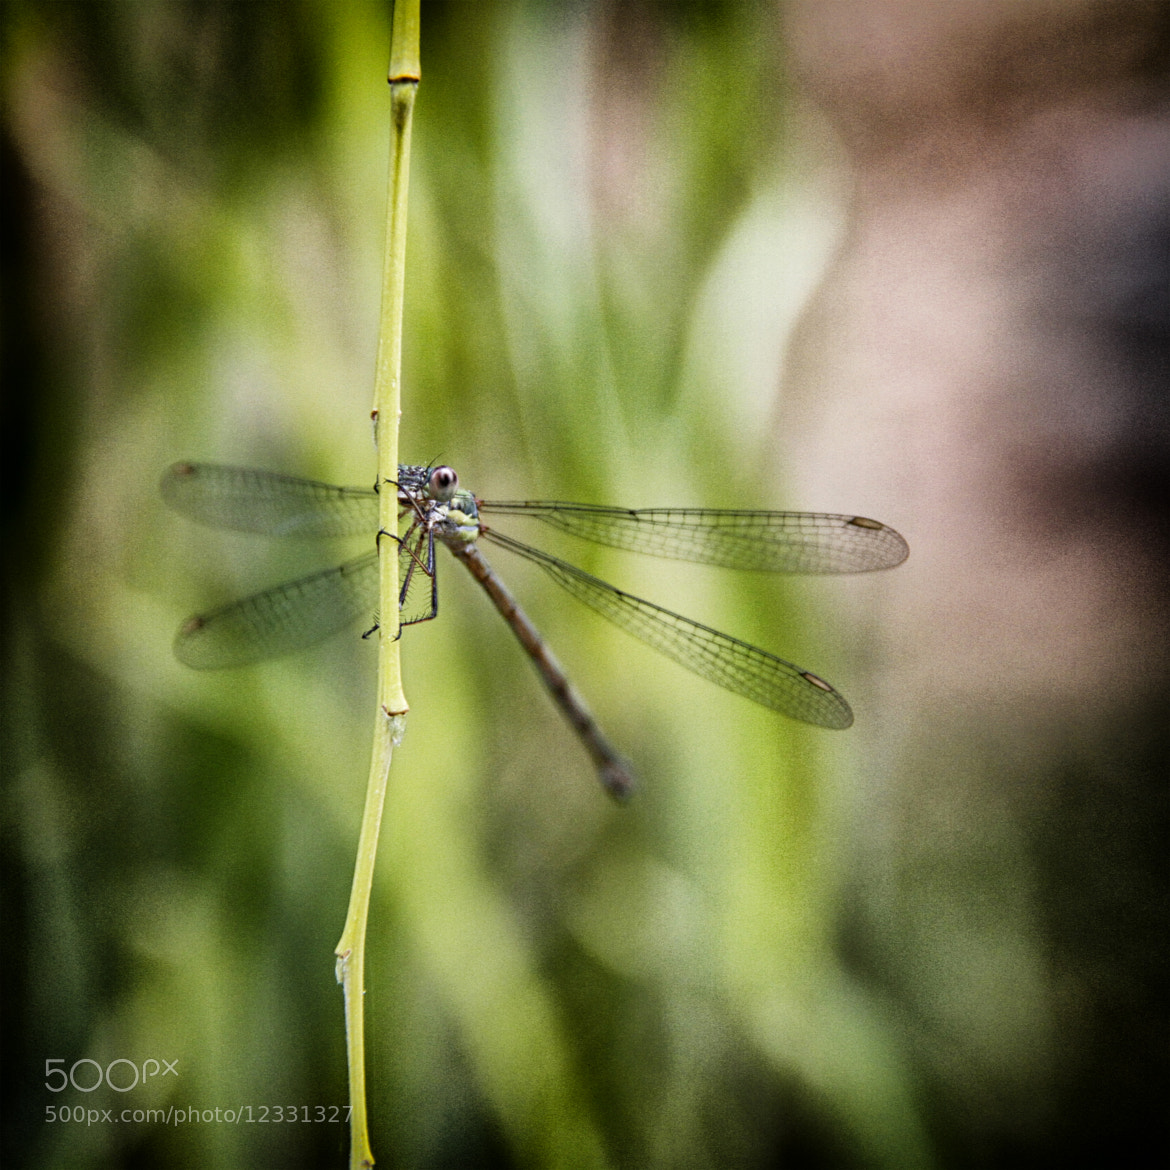 Photograph Romantic Dragonfly - Libélula Romántica by Ivan Blanco  on 500px